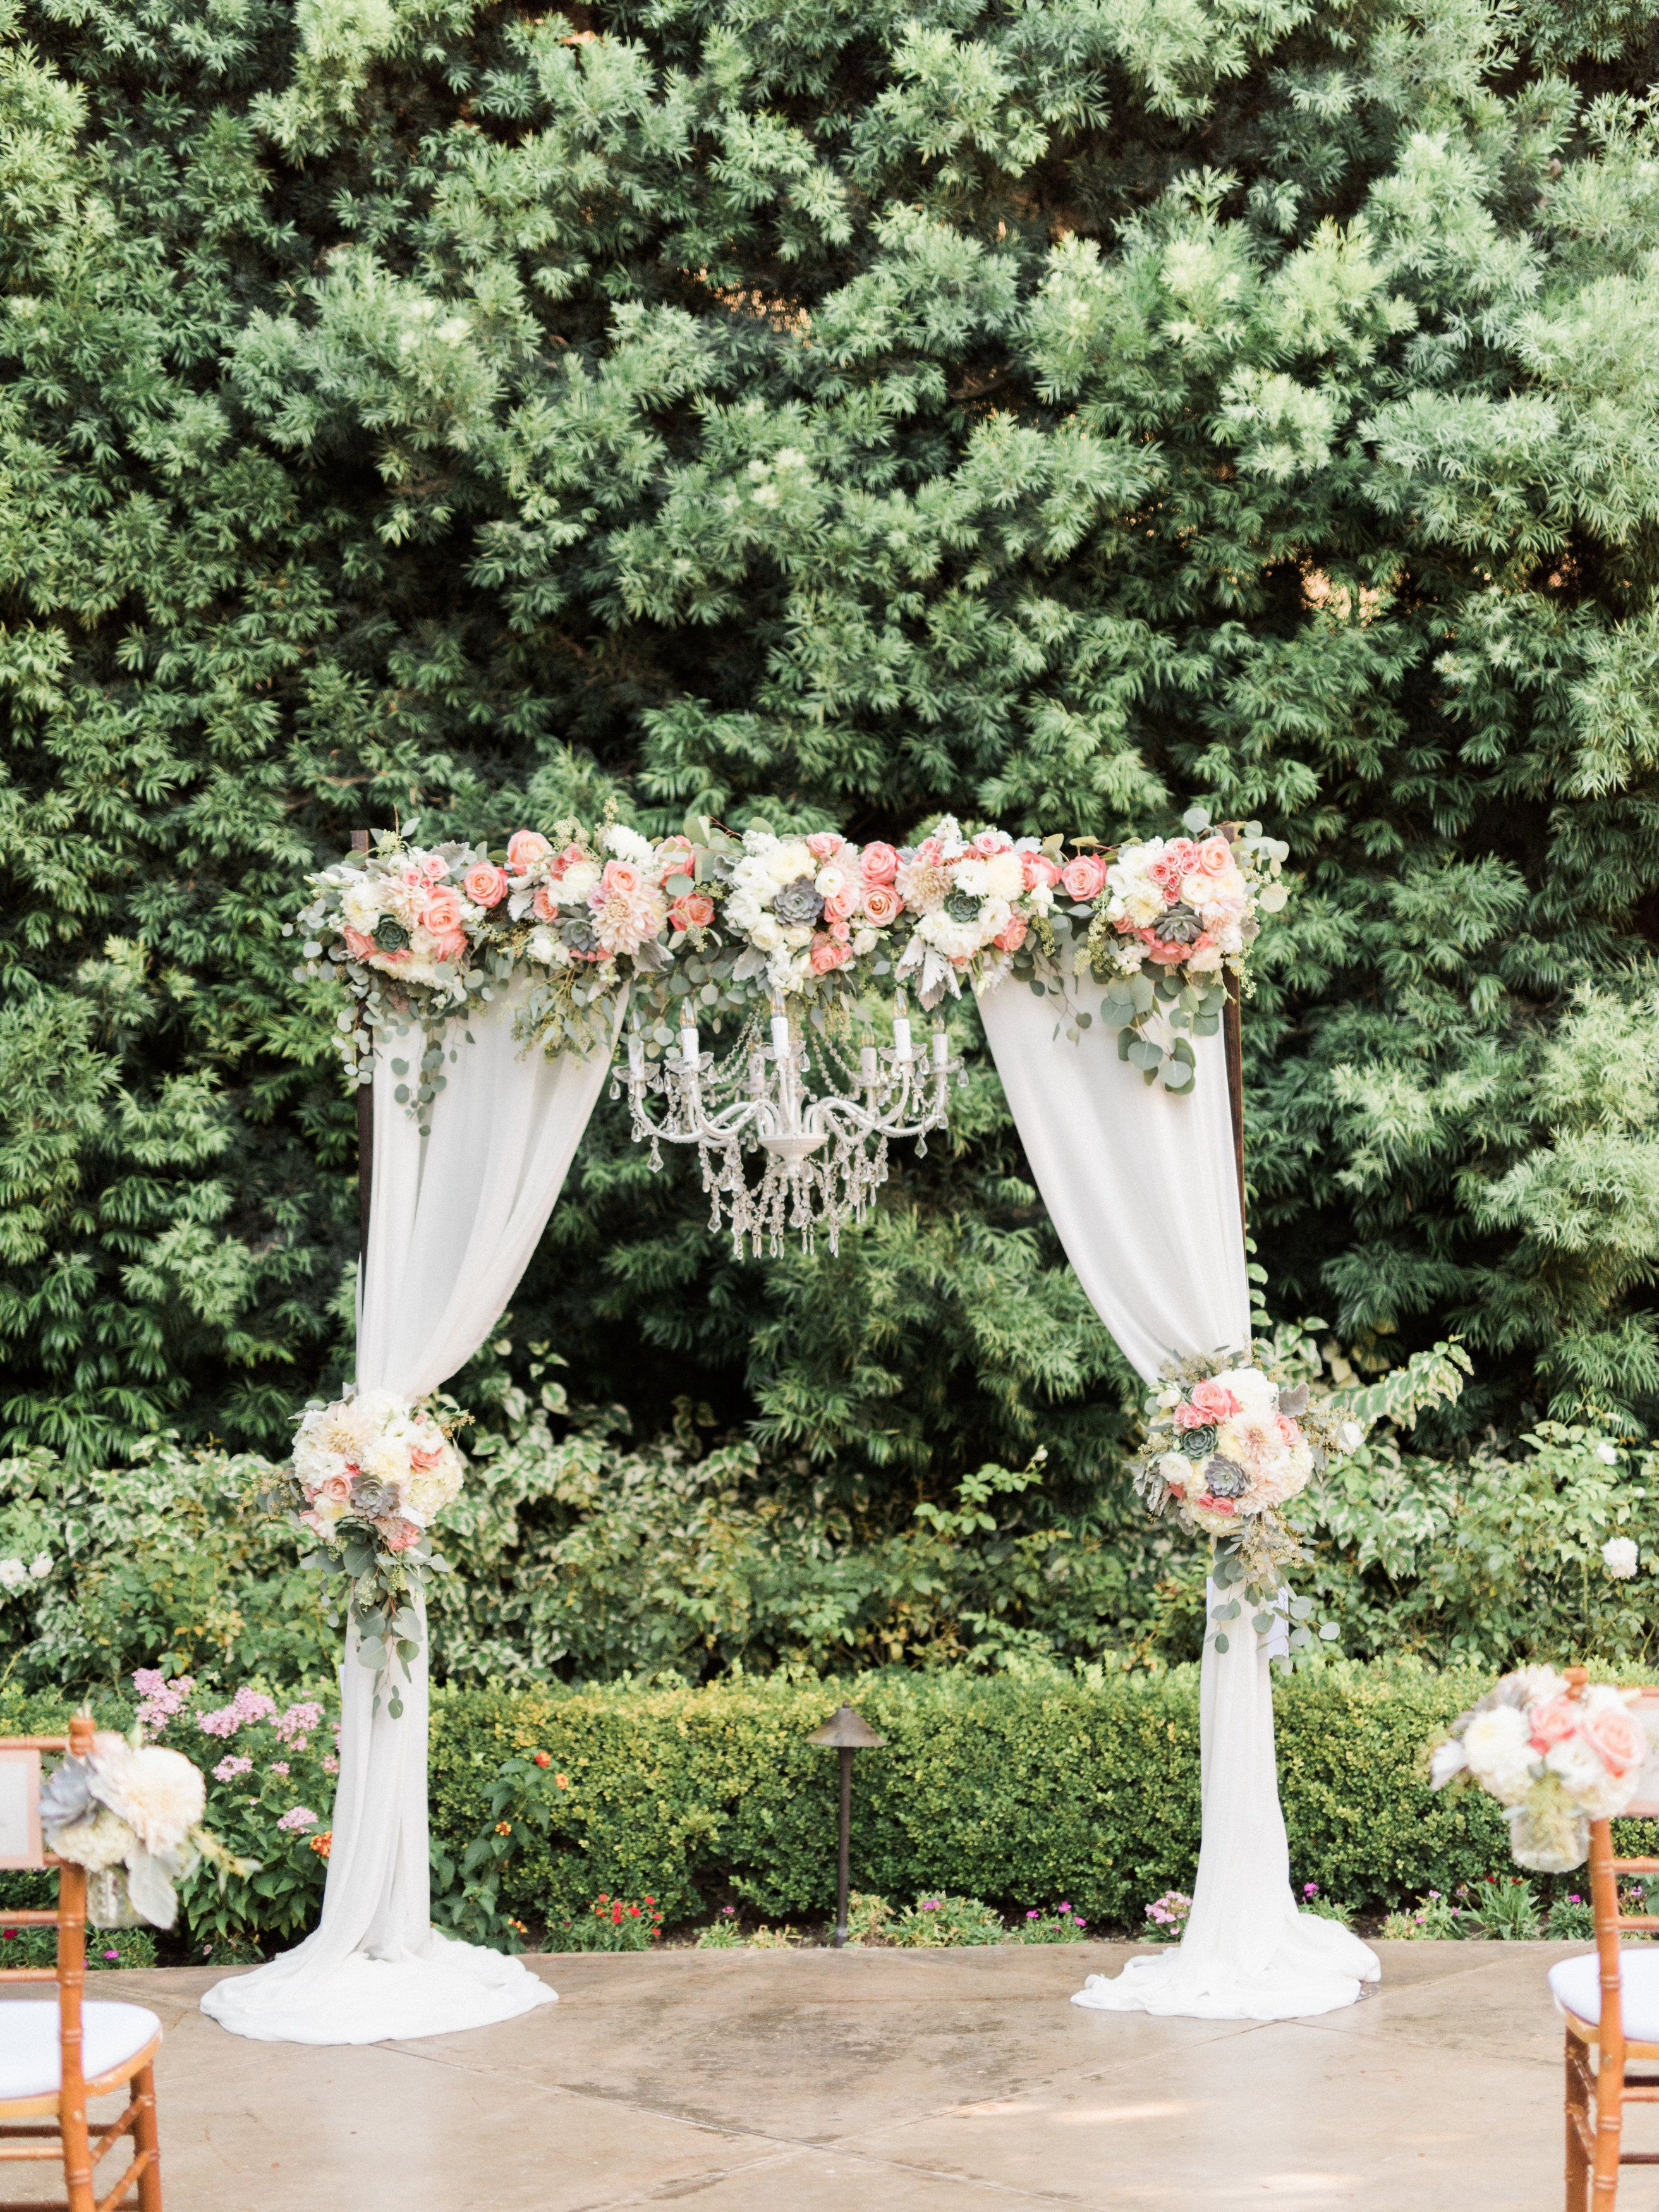 Wedding ceremony arch with draping fabric and chandelier Succulents